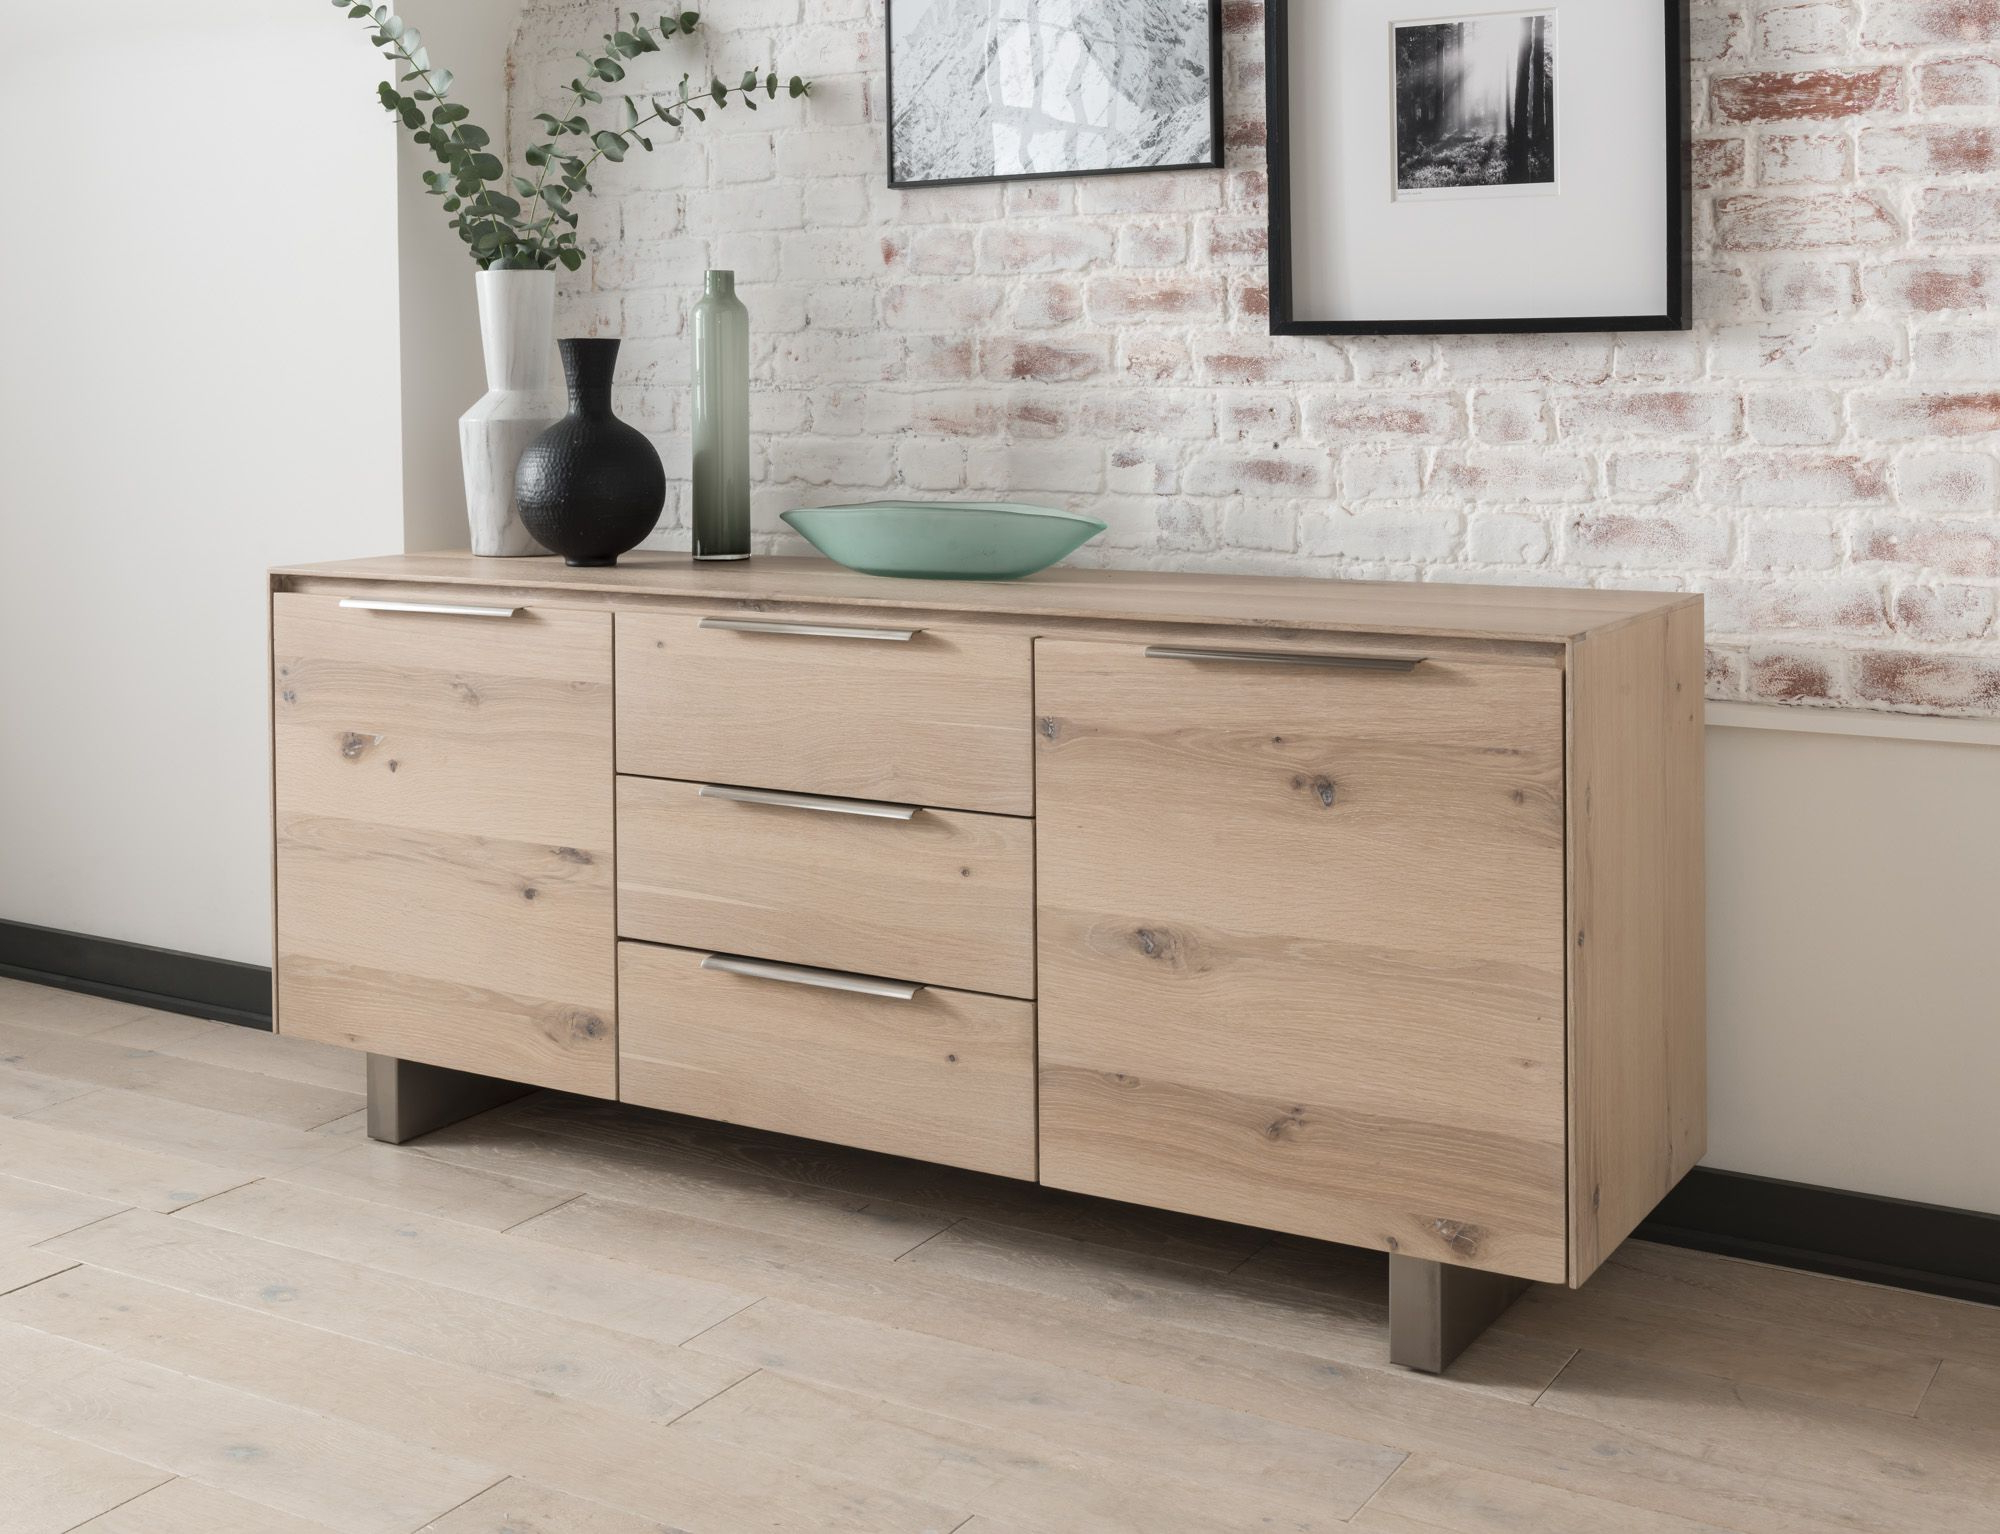 Capua White Washed Oak Sideboard 18Vd175 Throughout Trendy 3 Drawer/2 Door White Wash Sideboards (View 6 of 20)